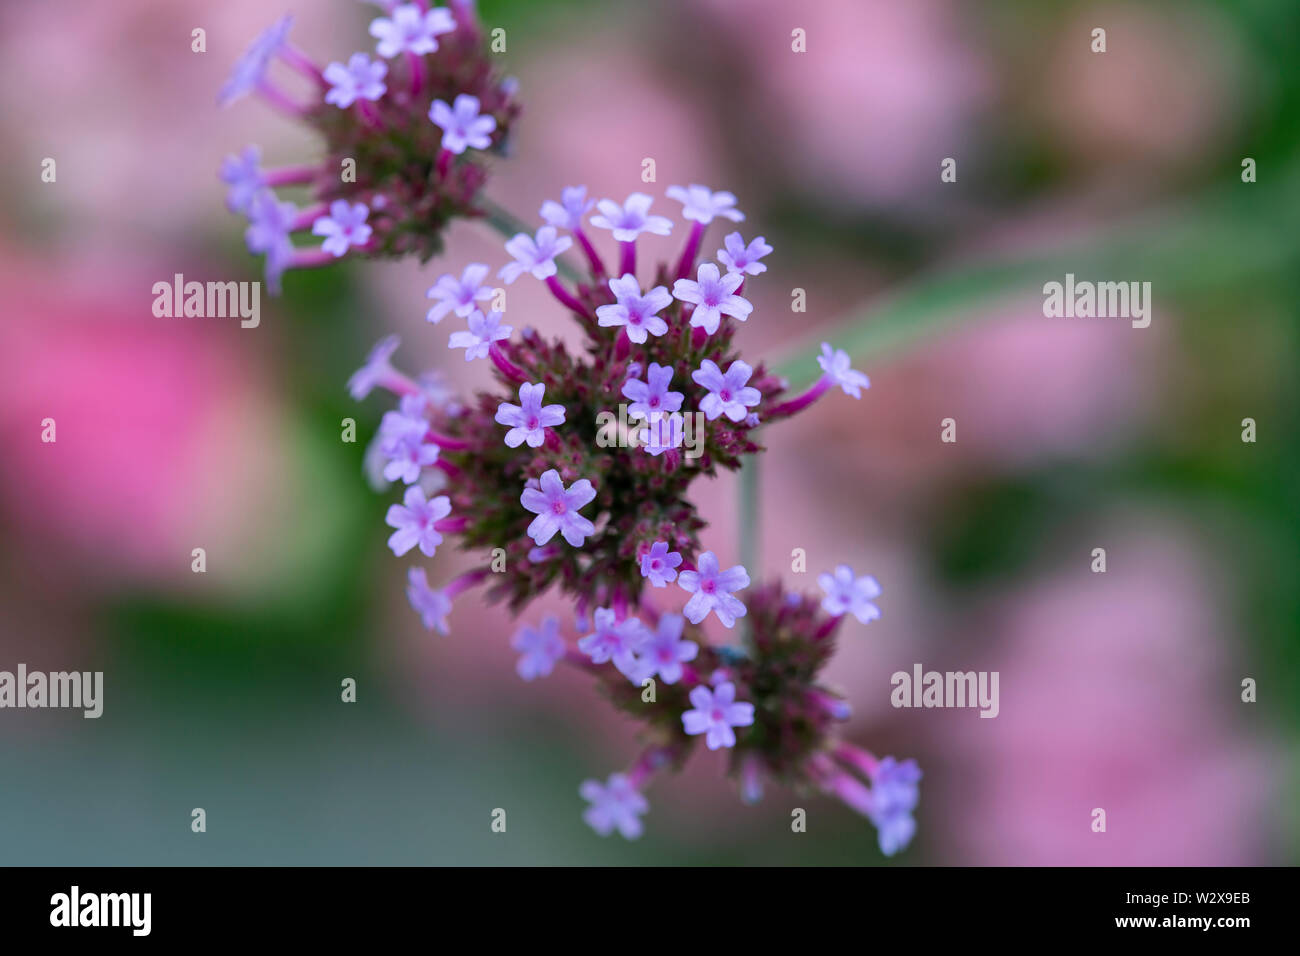 Vervain plant in blossom, Verbena Verbenaceae, shallow depth of the field - Stock Image